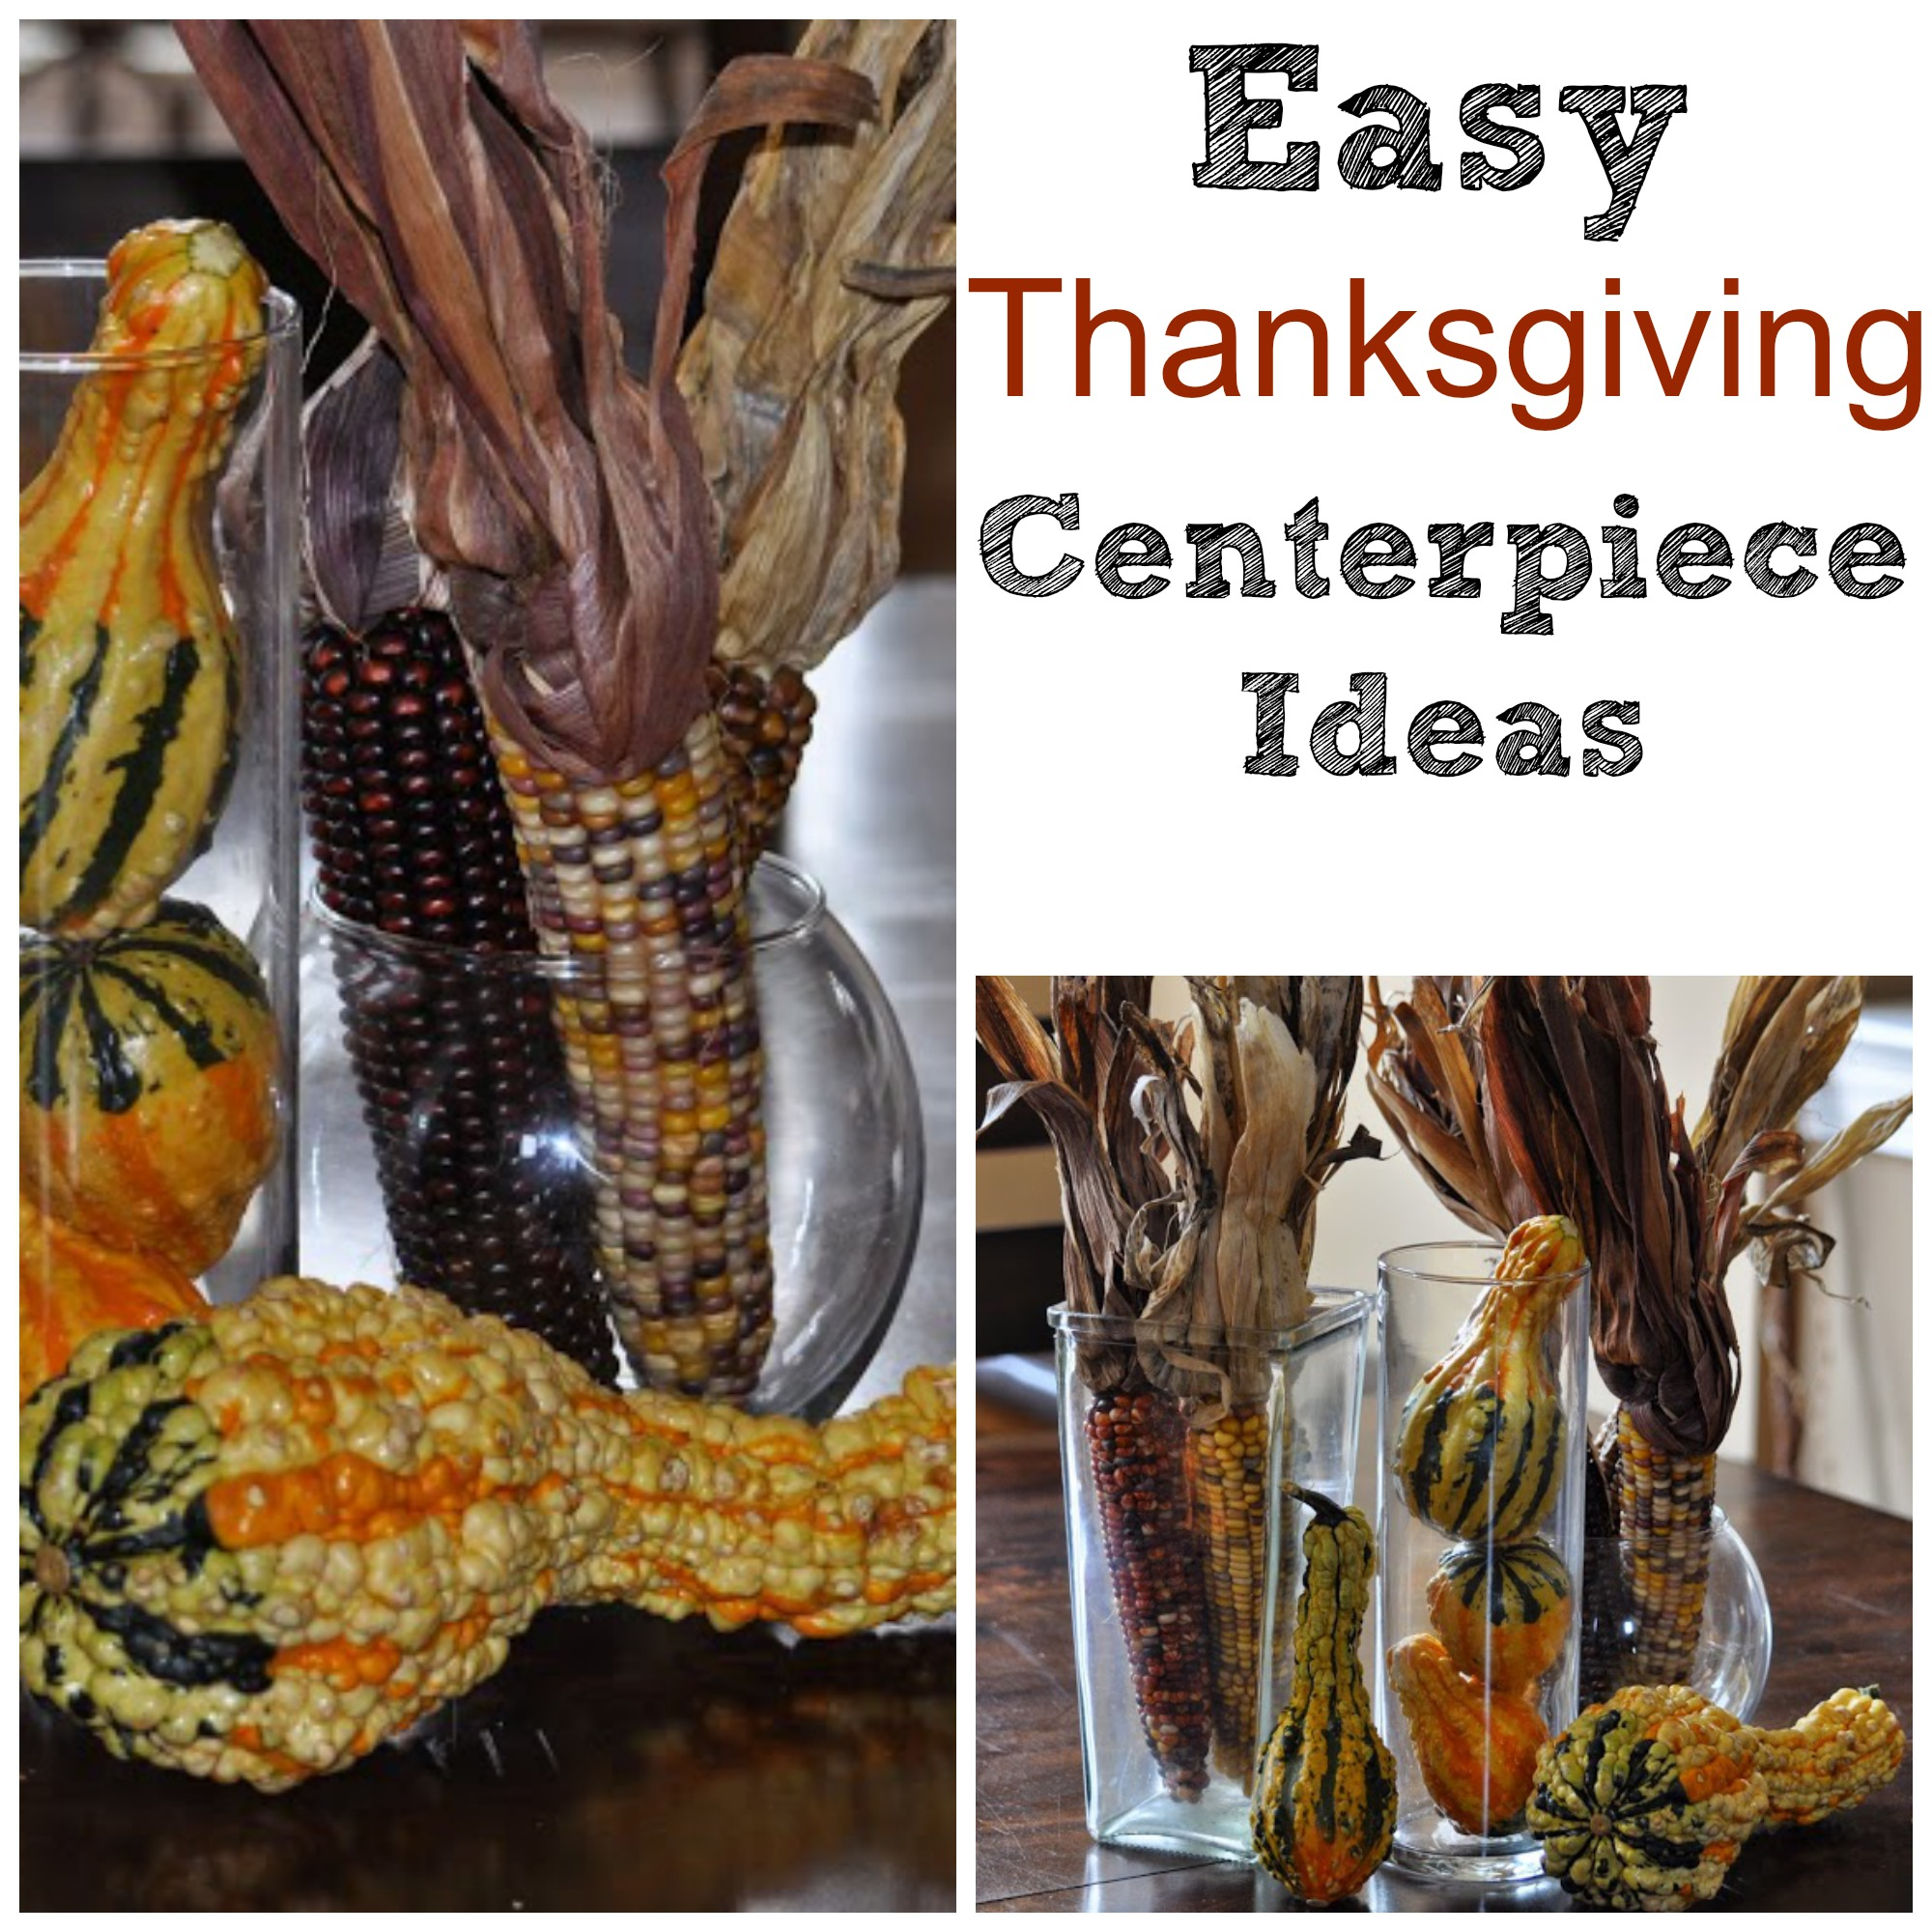 Video tips on how to create a thanksgiving centerpiece